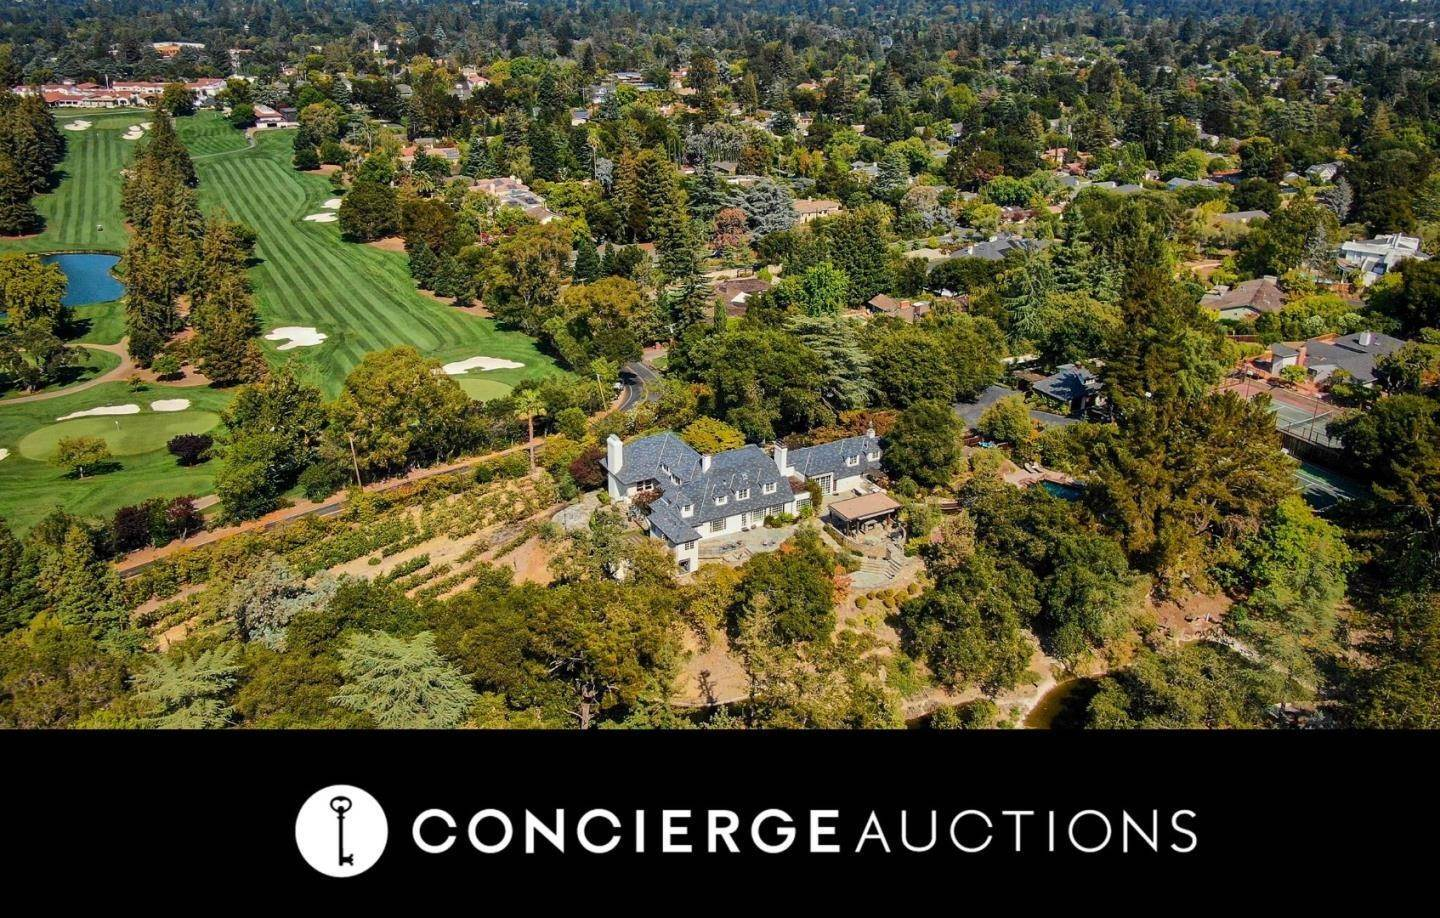 Single Family Homes for Sale at 690 Loyola Drive Los Altos Hills, California 94024 United States